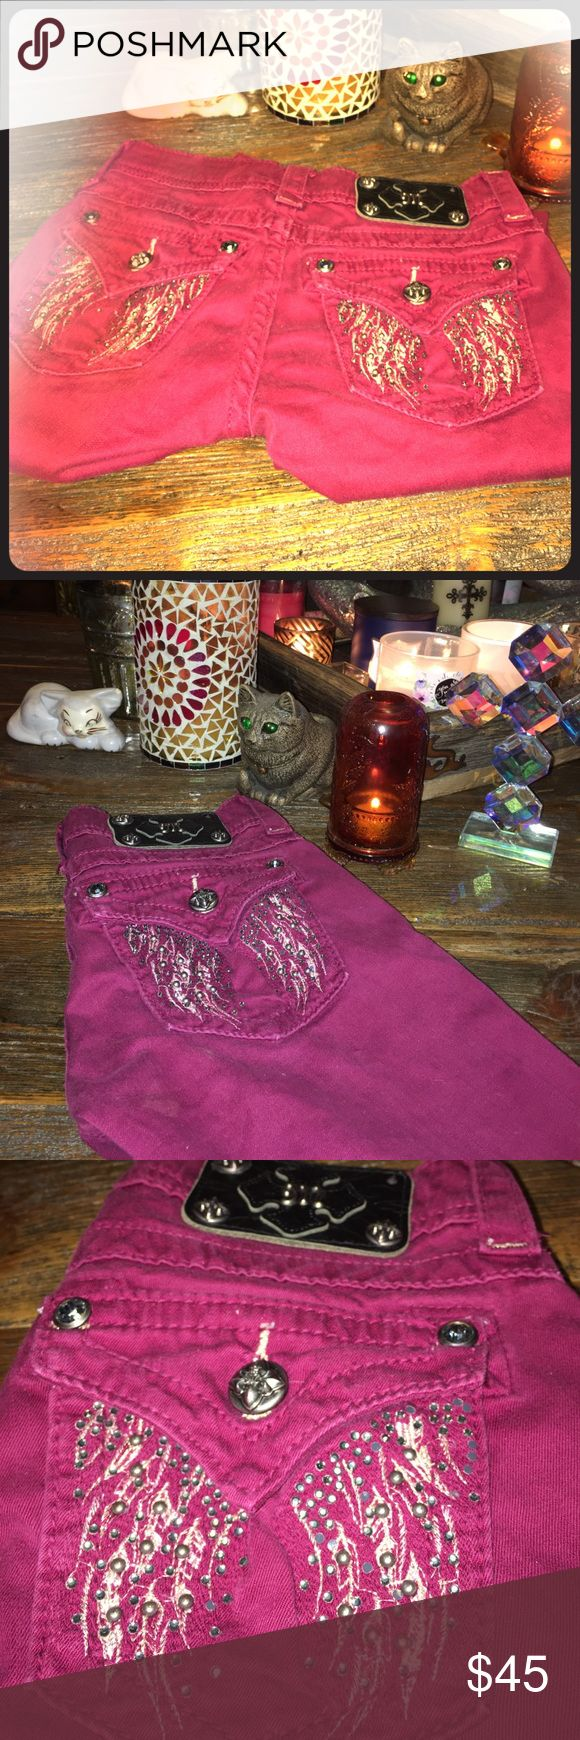 Miss Me skinny jeans Size 24 raspberry color. I just bought on this store for my teen and they are too tight. Miss Me Jeans Skinny